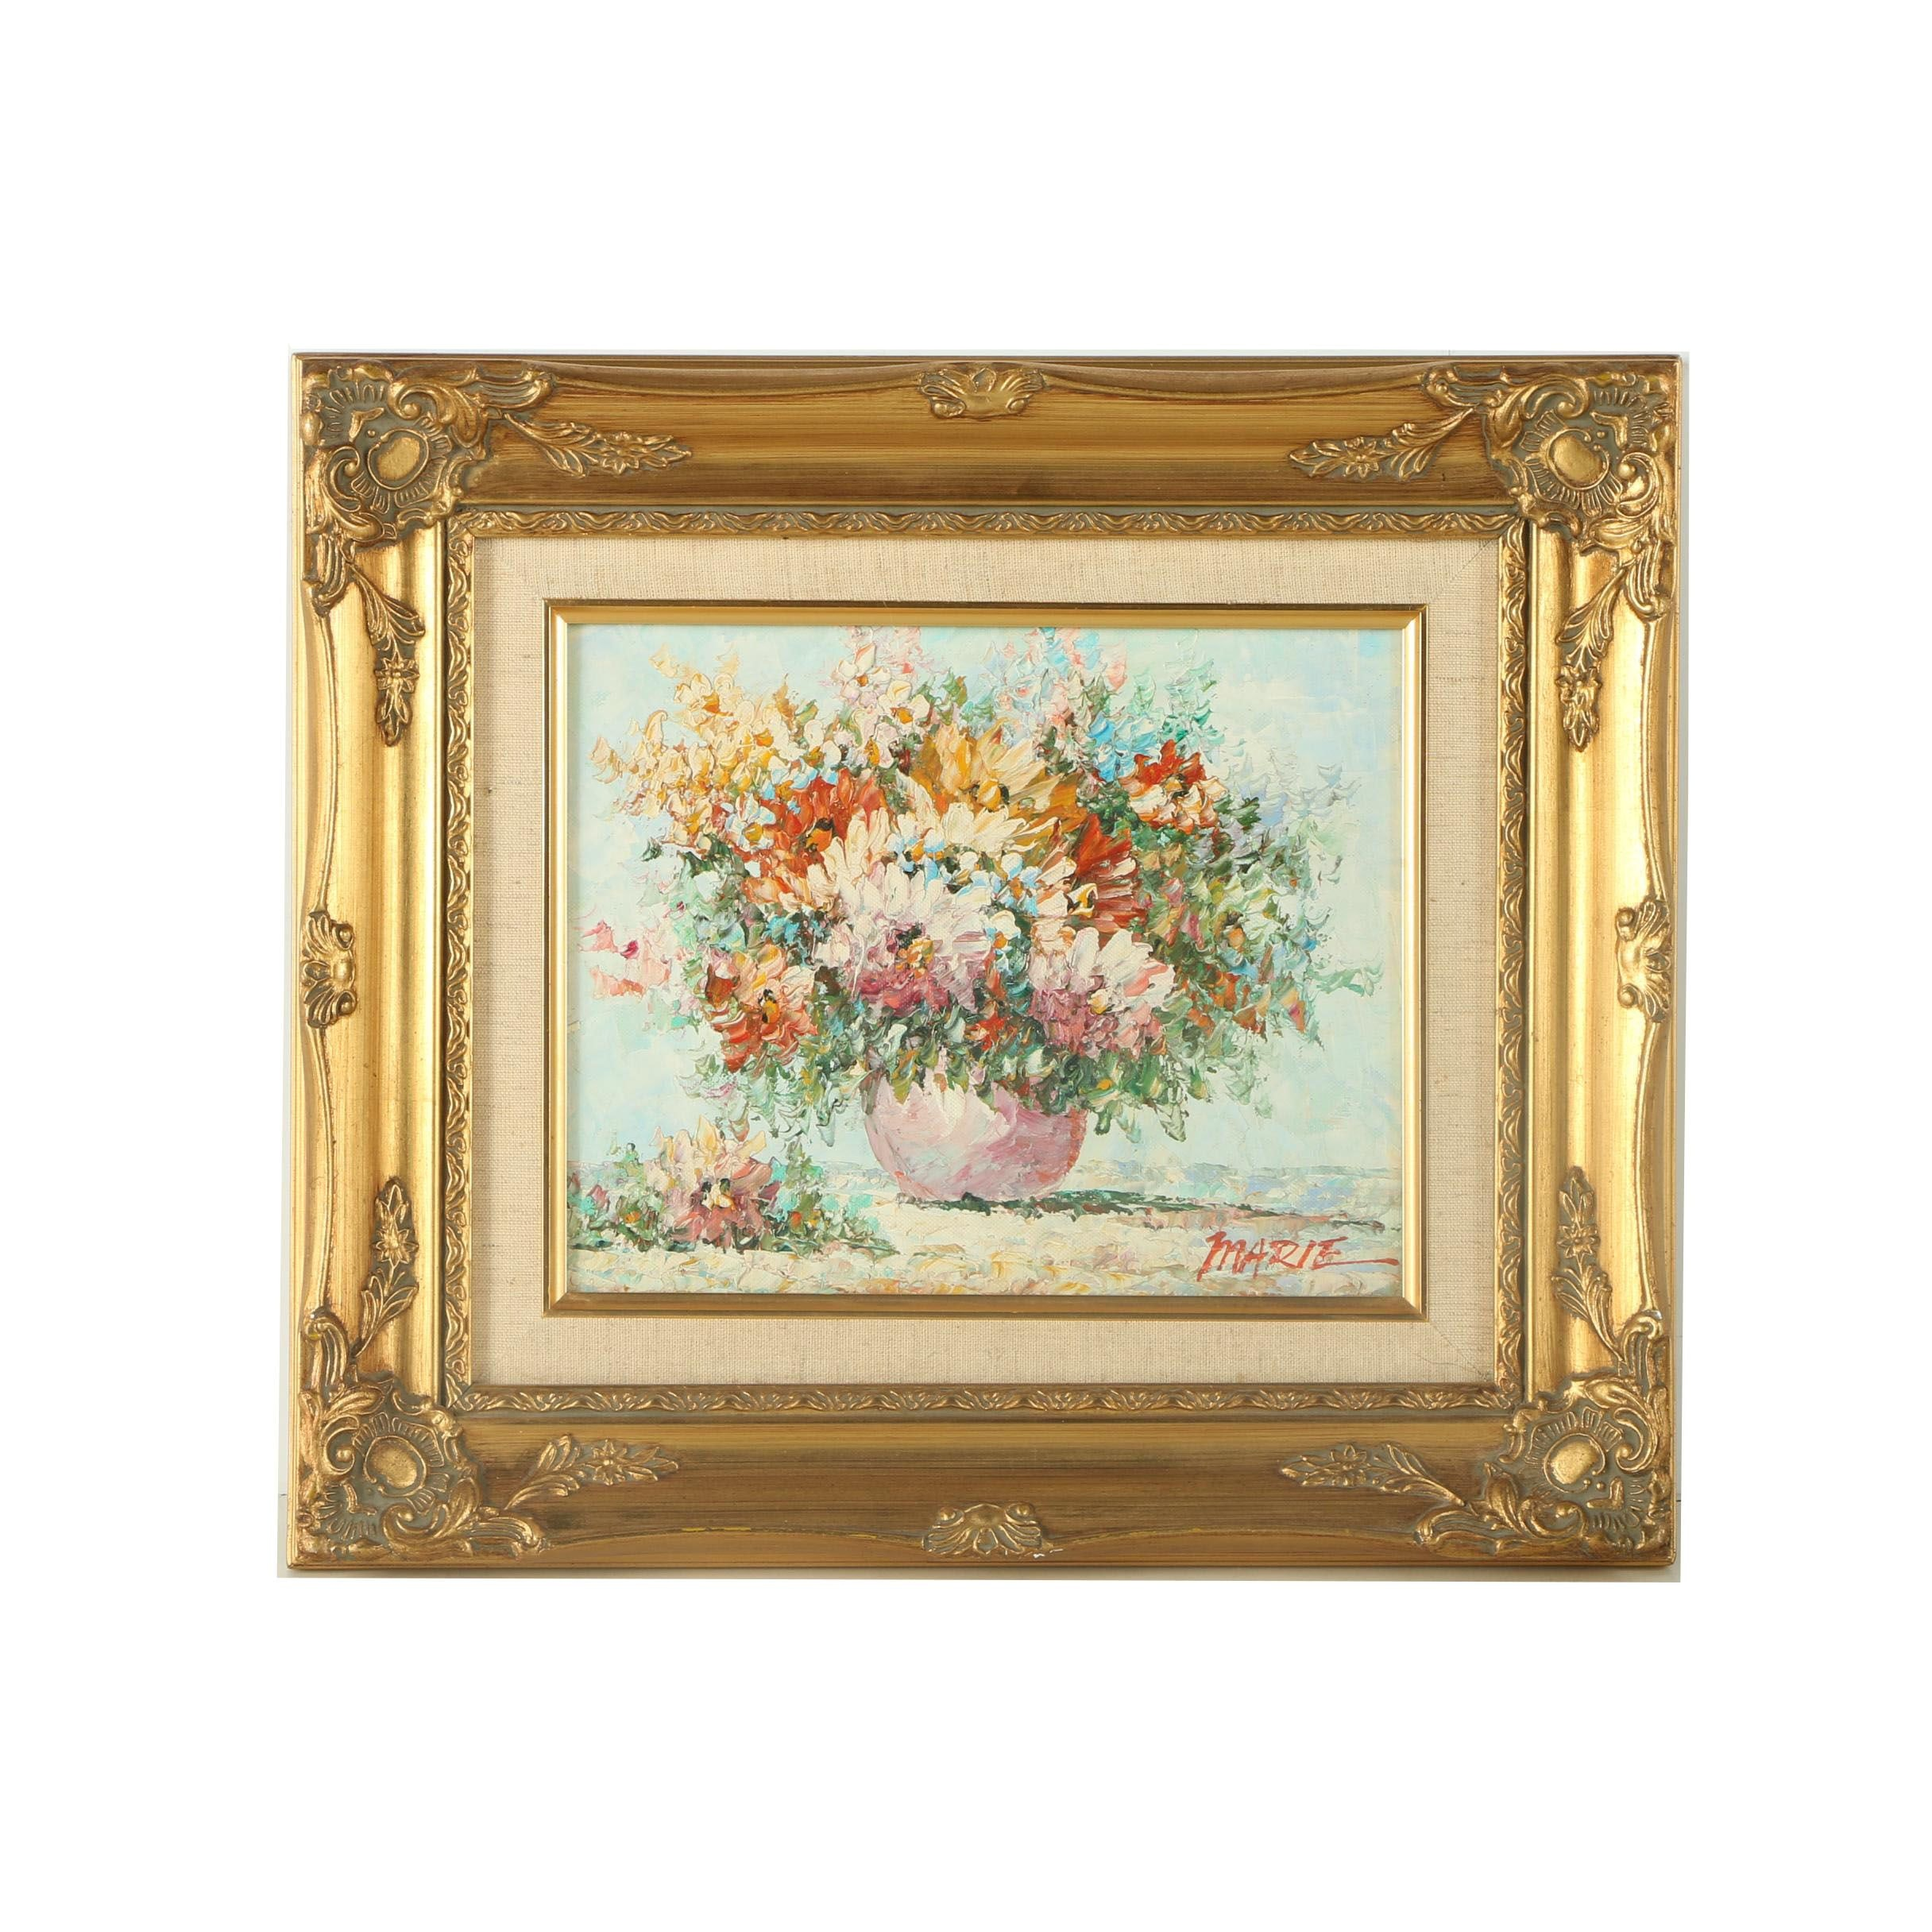 Marie Oil Painting on Canvas of a Floral Still Life